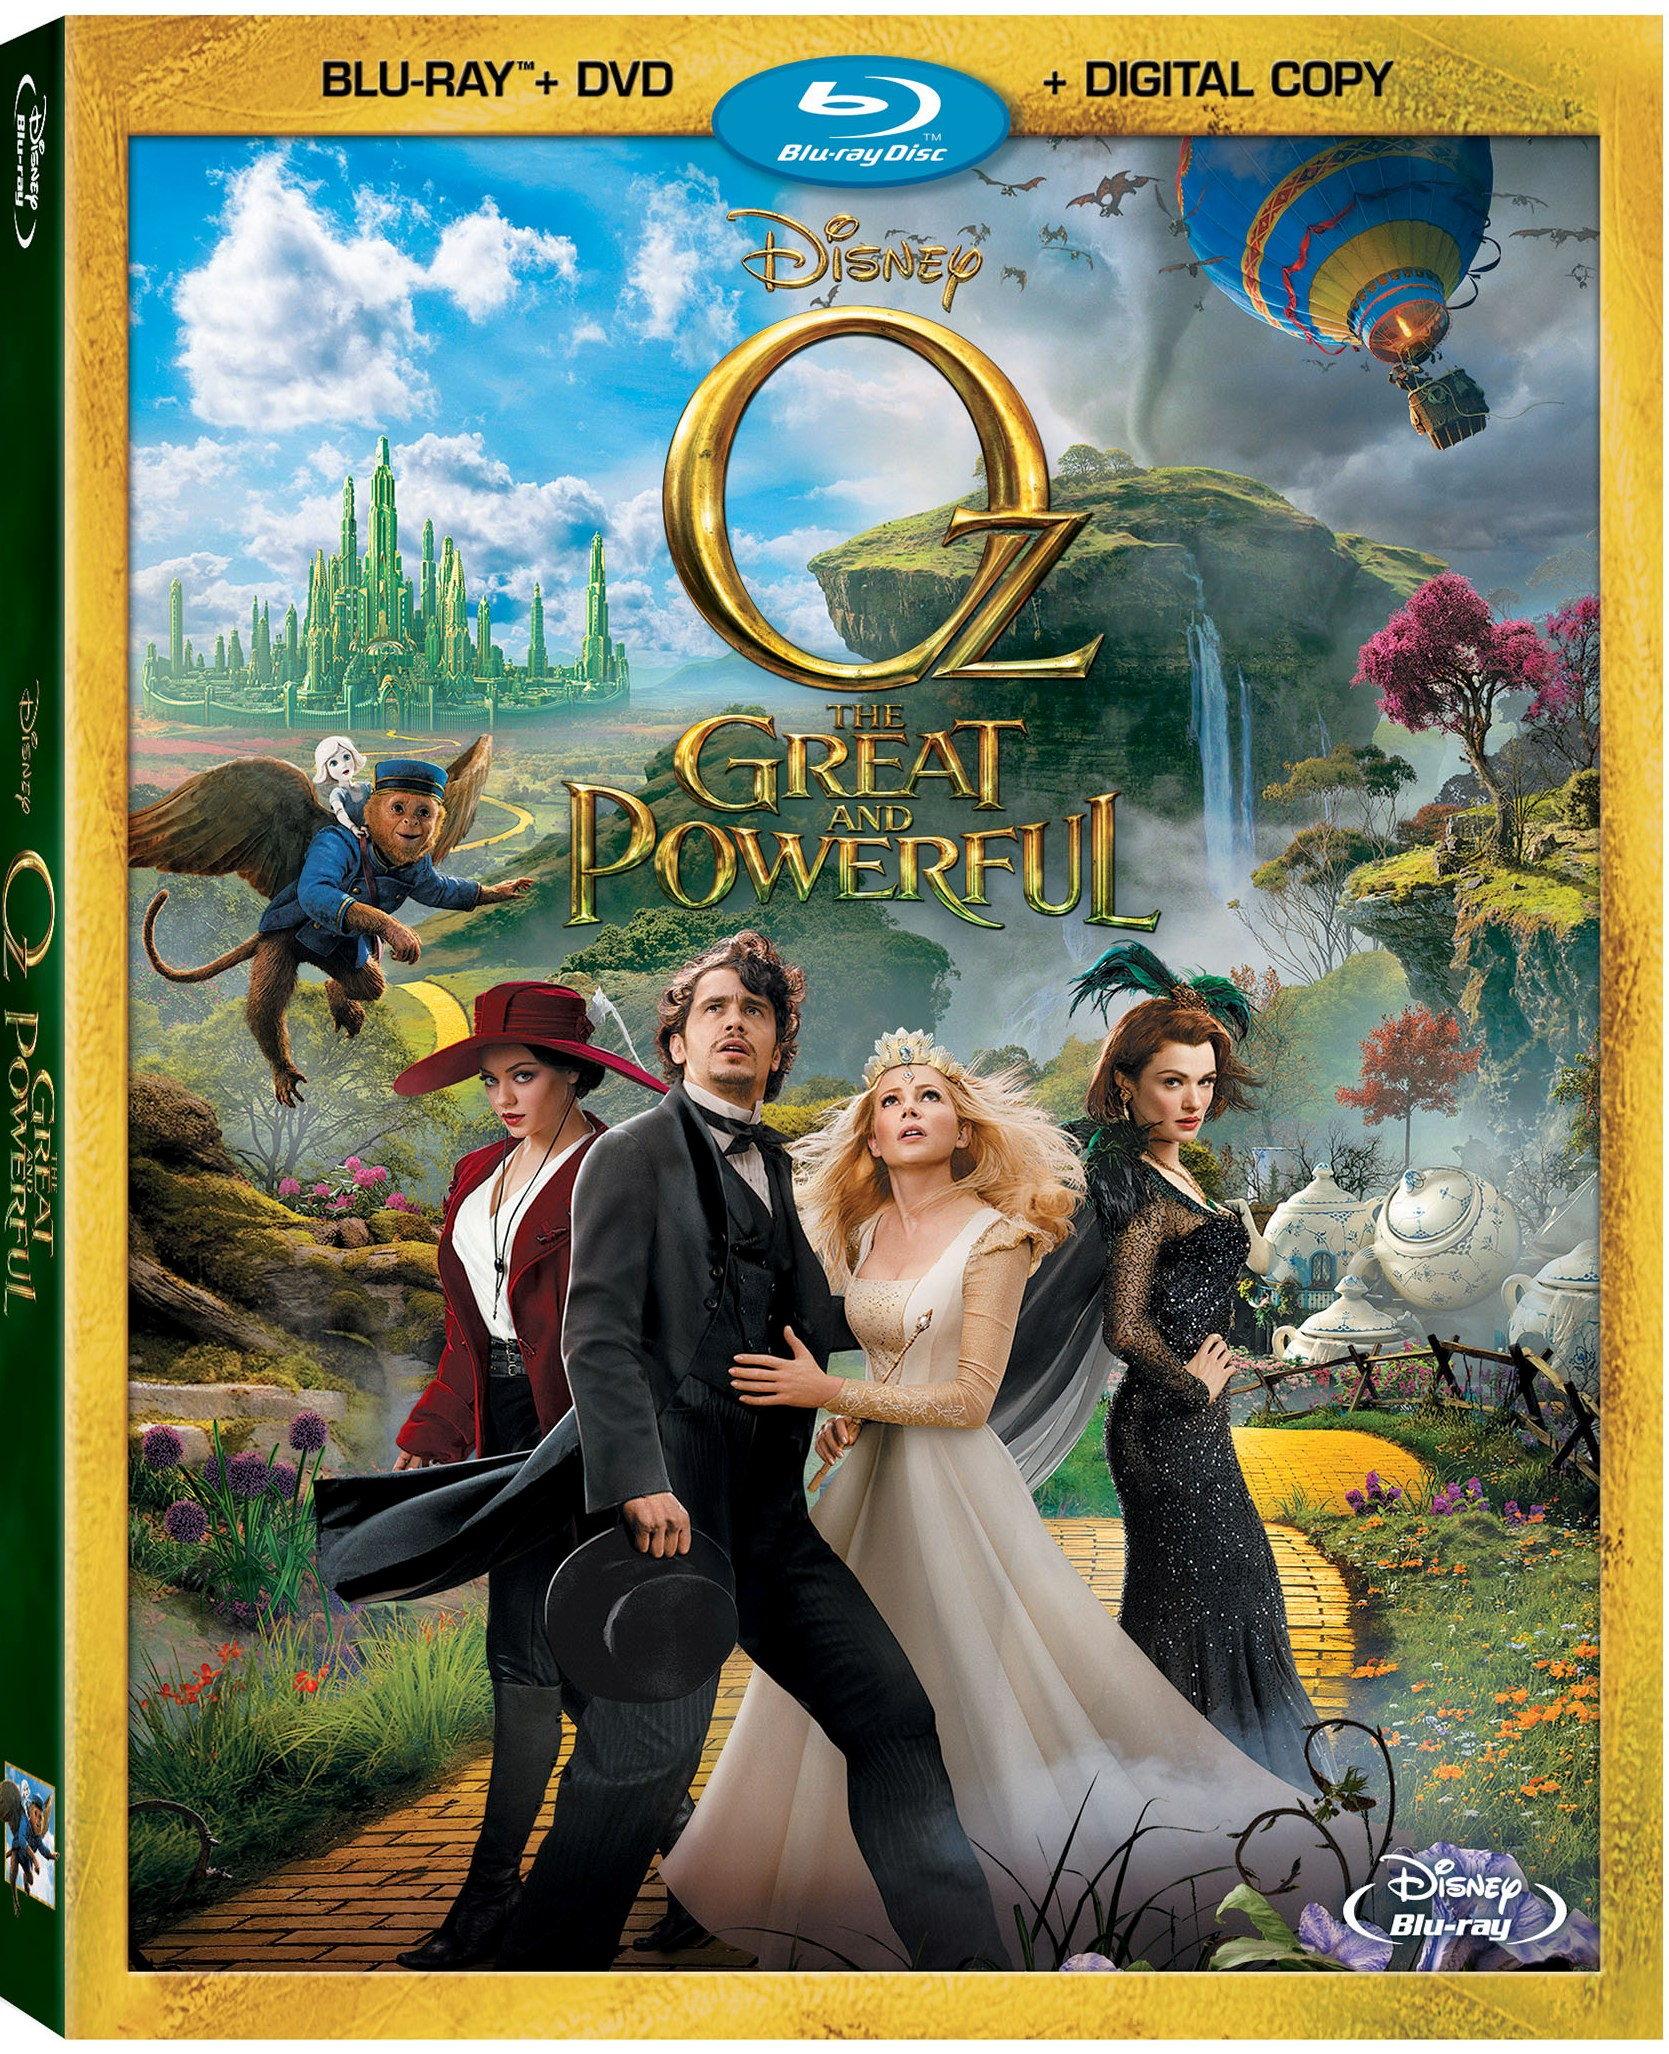 OZ THE GREAT AND POWERFUL Is Now On DVD